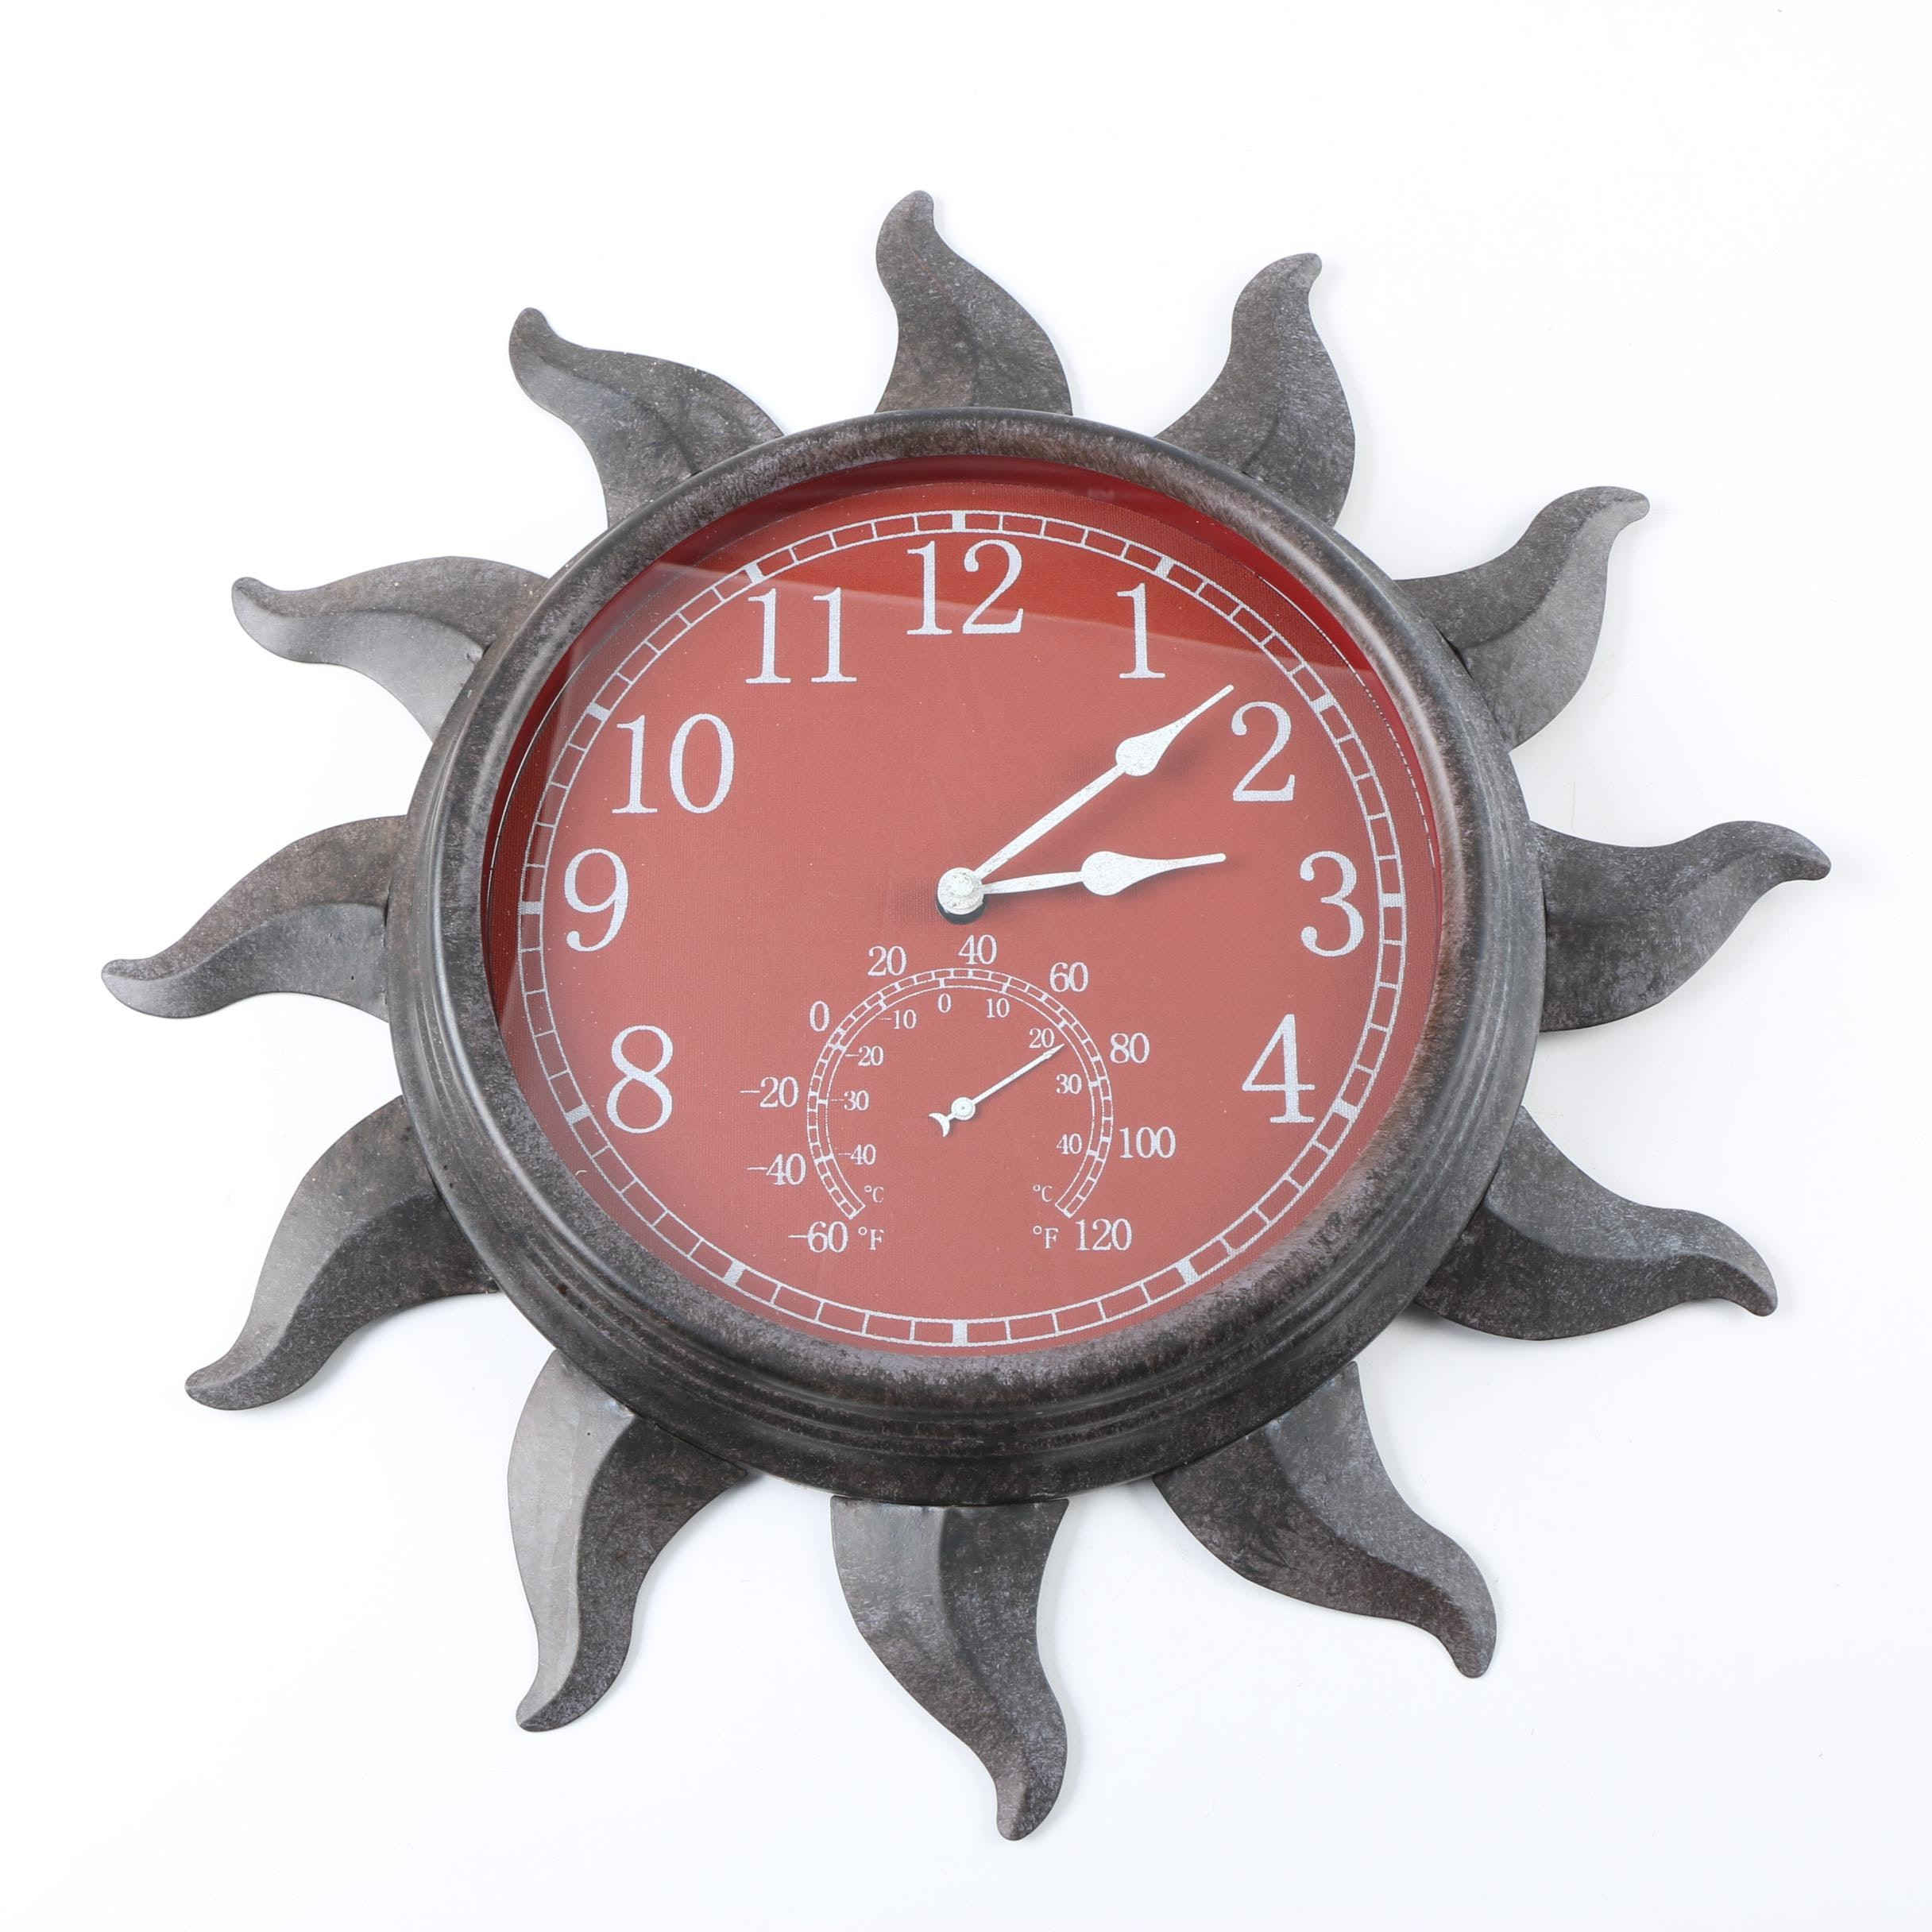 Sun Shaped Wall Clock with Thermometer